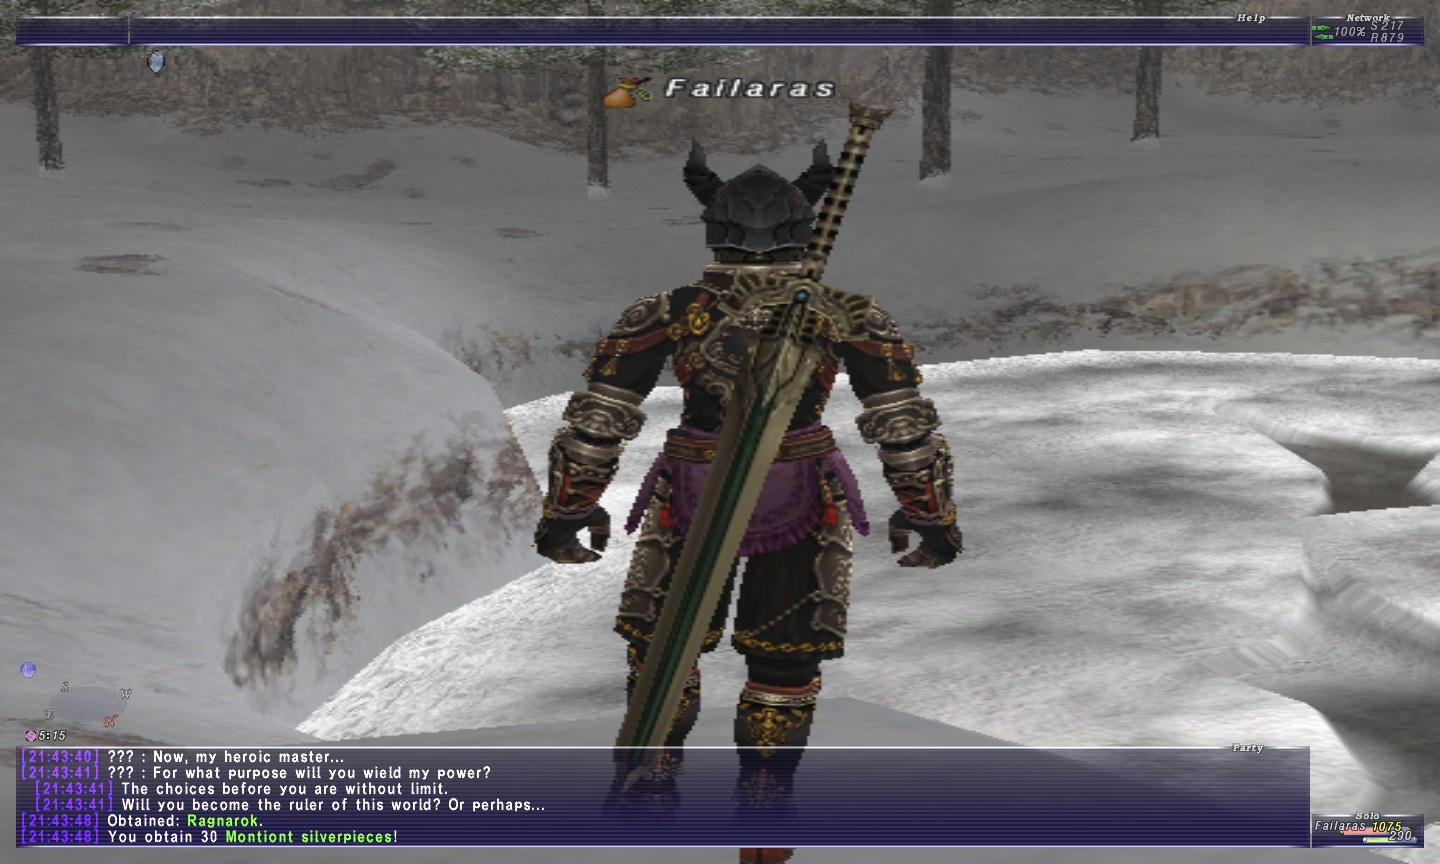 falaras ffxi doing this that comes love down proph also caliburn grats tool shame like prophett moirai leviathan list relicmythic weapons seems completed known time long forever